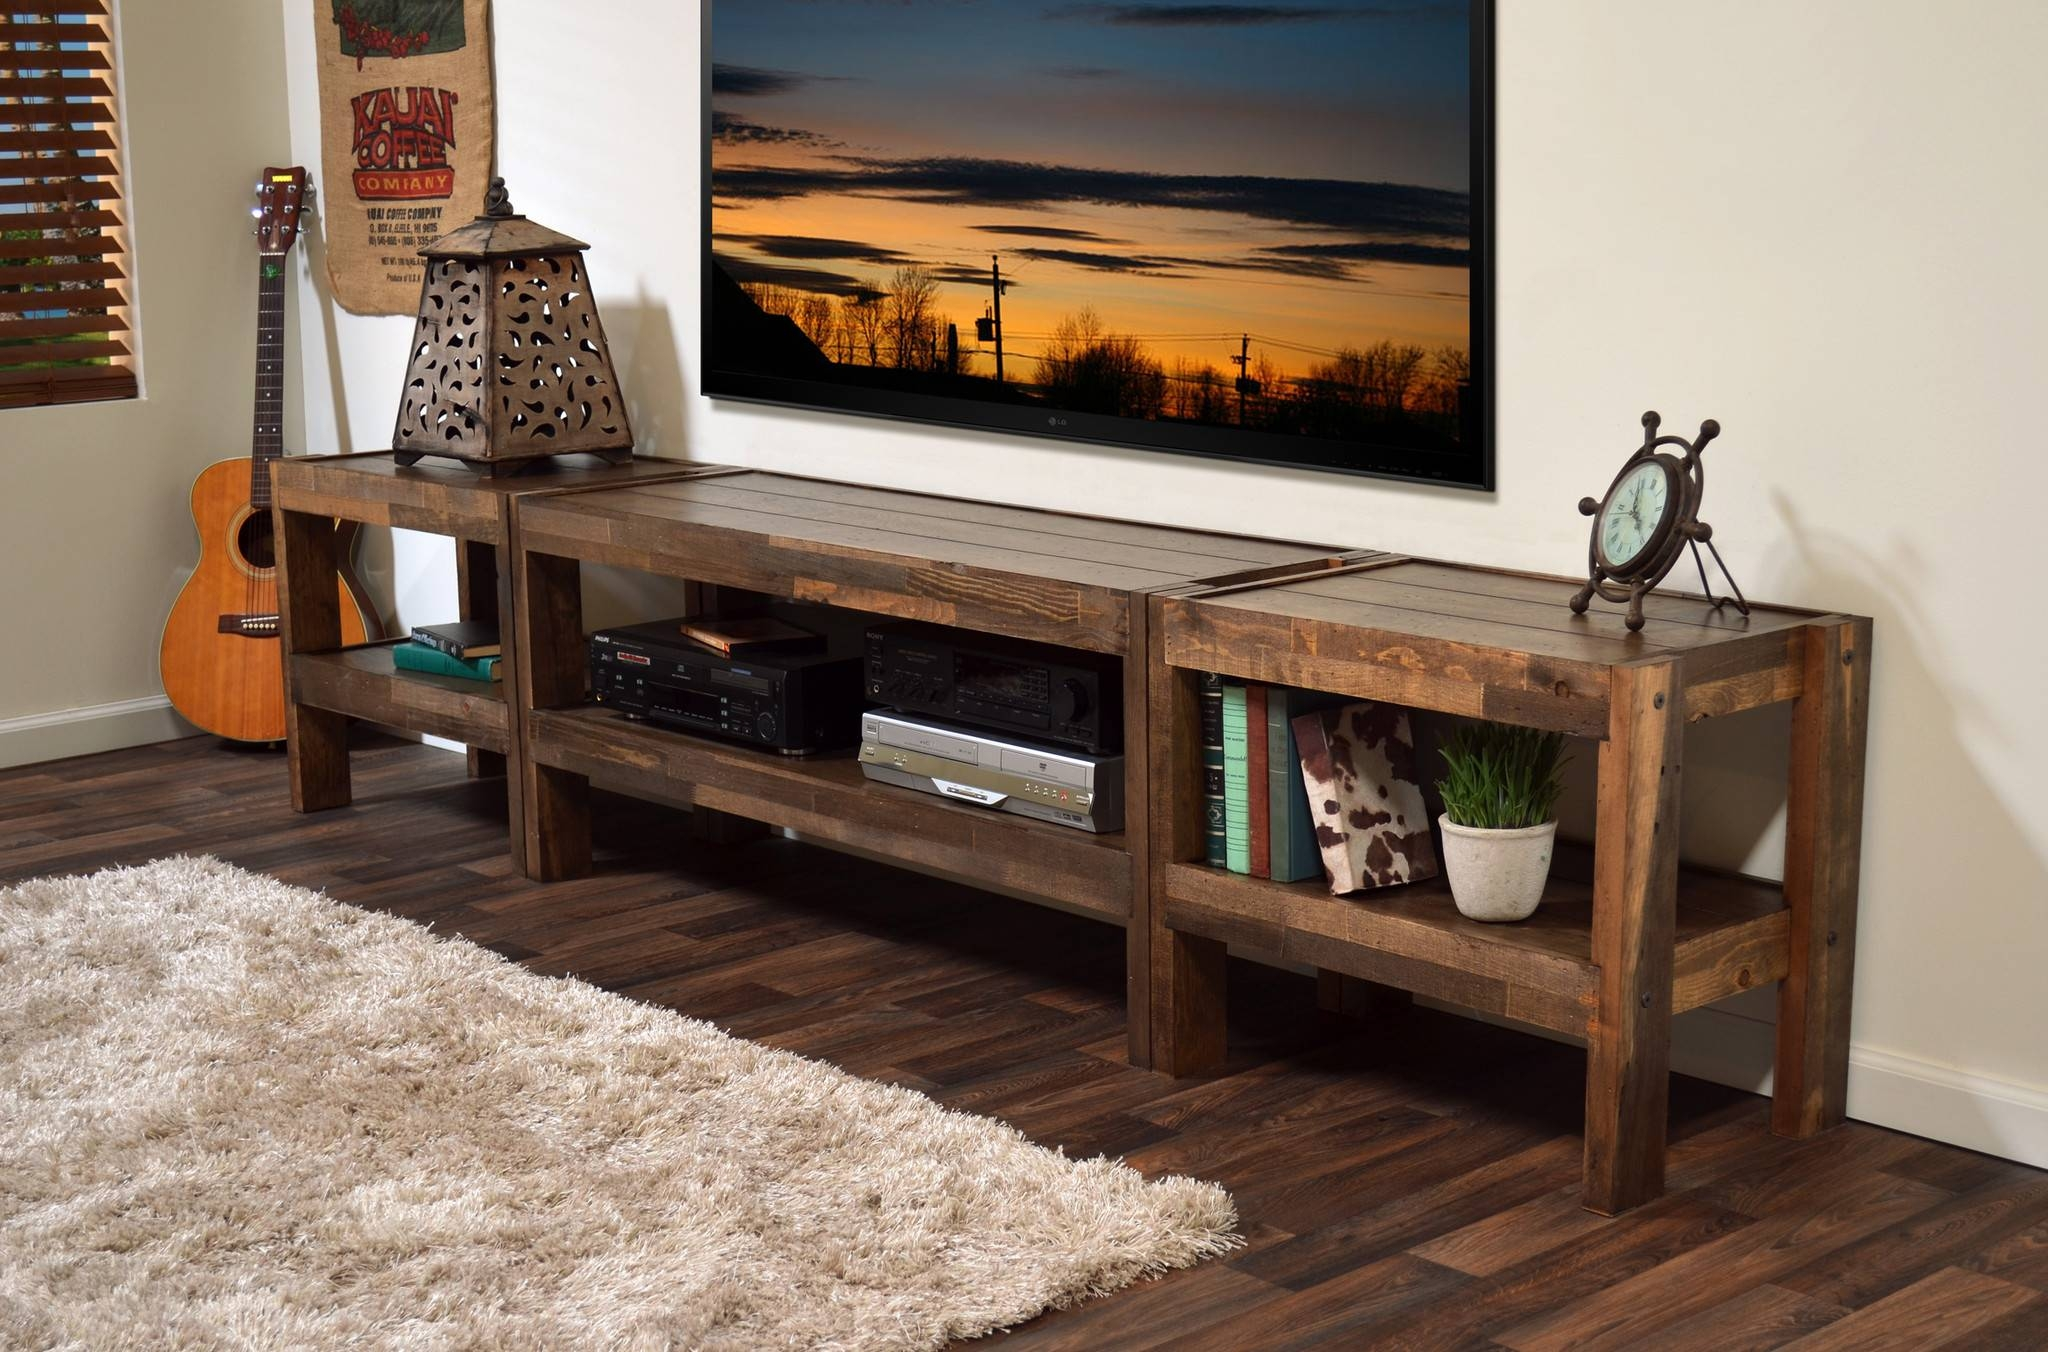 Reclaimed Wood Entertainment Center Photo – Home Furniture Ideas intended for Wood Tv Entertainment Stands (Image 9 of 15)